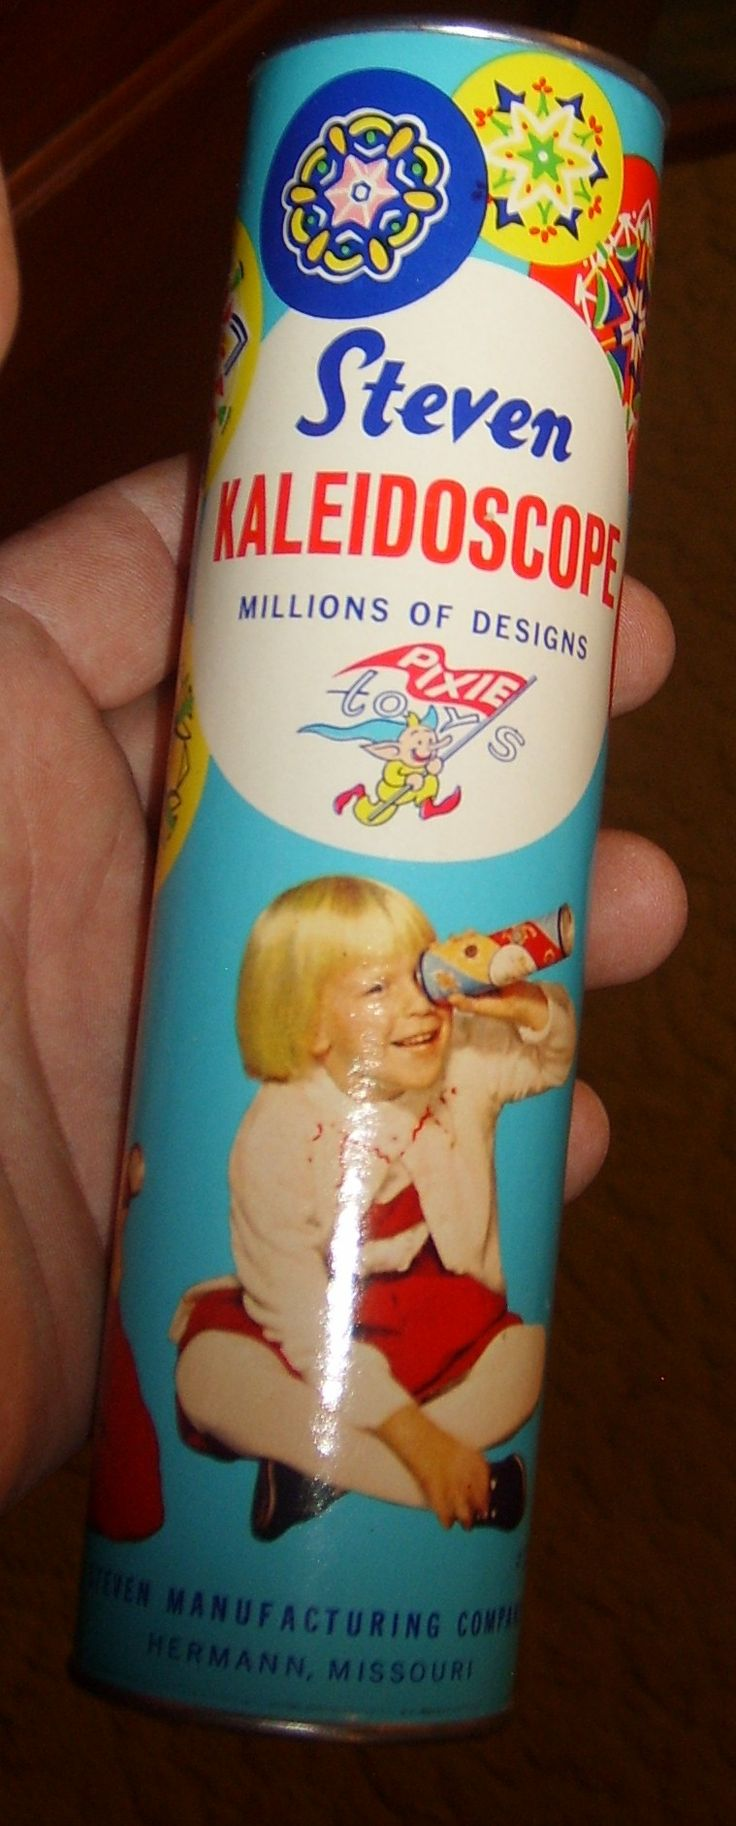 Kaleidoscope.  I would argue that it's this toy that led to doing drugs in the late '60s.  Bring on the pretty colors!  LOL